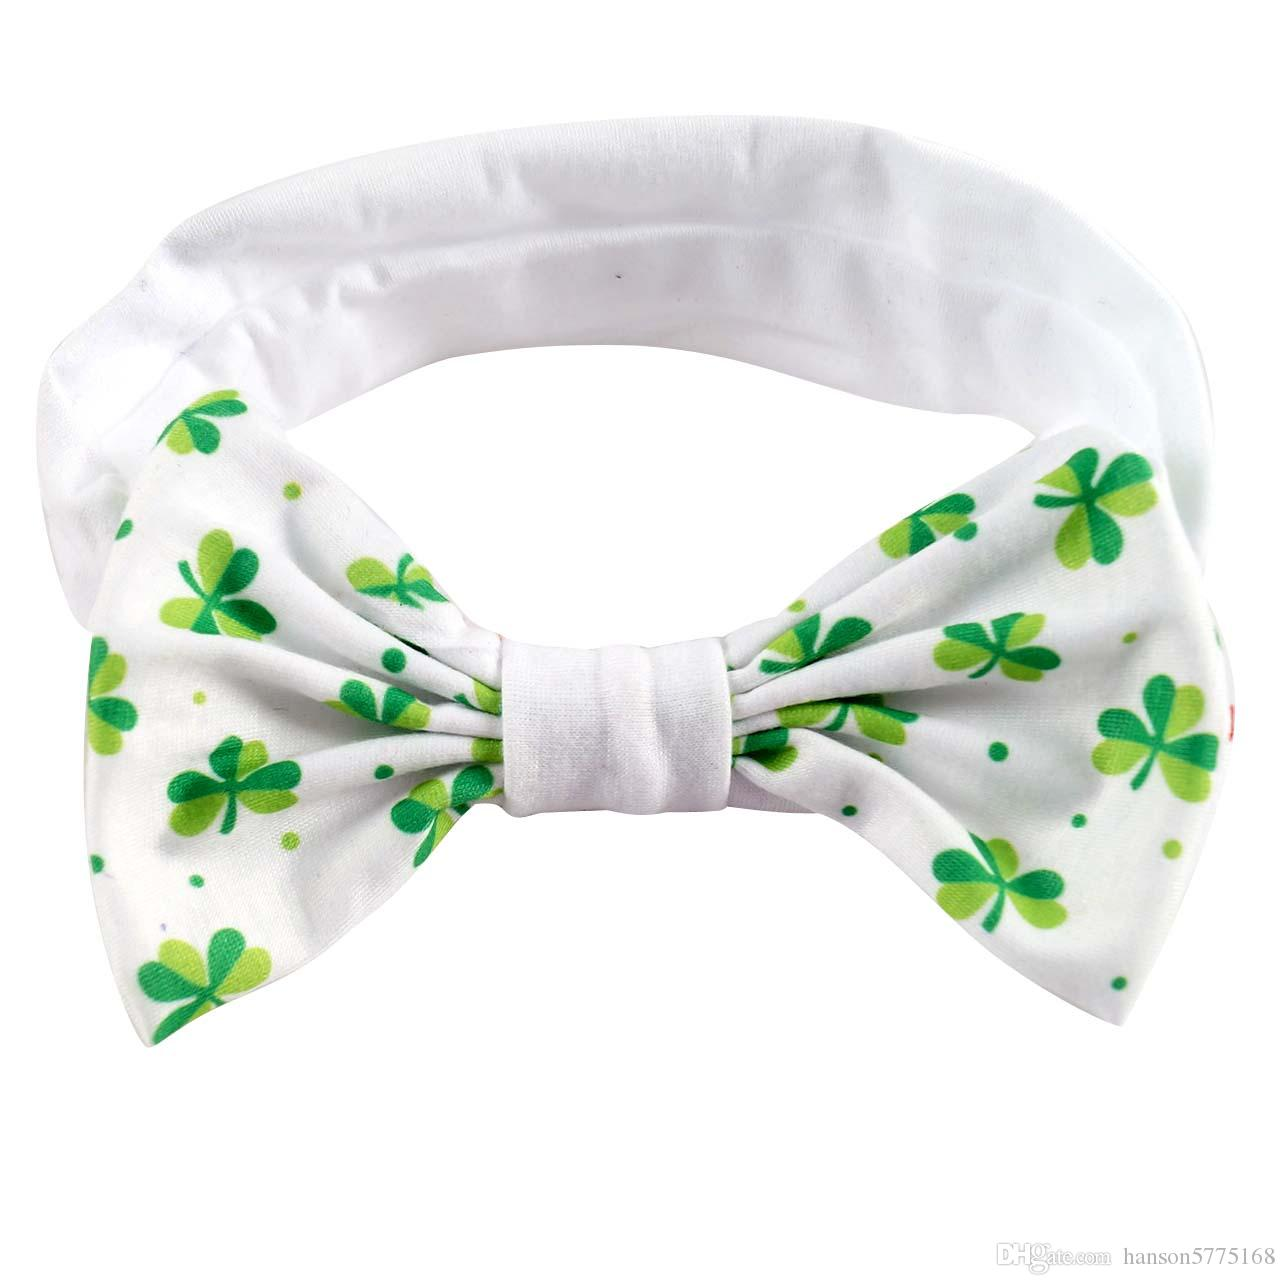 10 Pcs/lot New Fashion High Quality Clover Headband Shamrock Hairbands with Bow for Baby Girls Hair Accessories Headwear